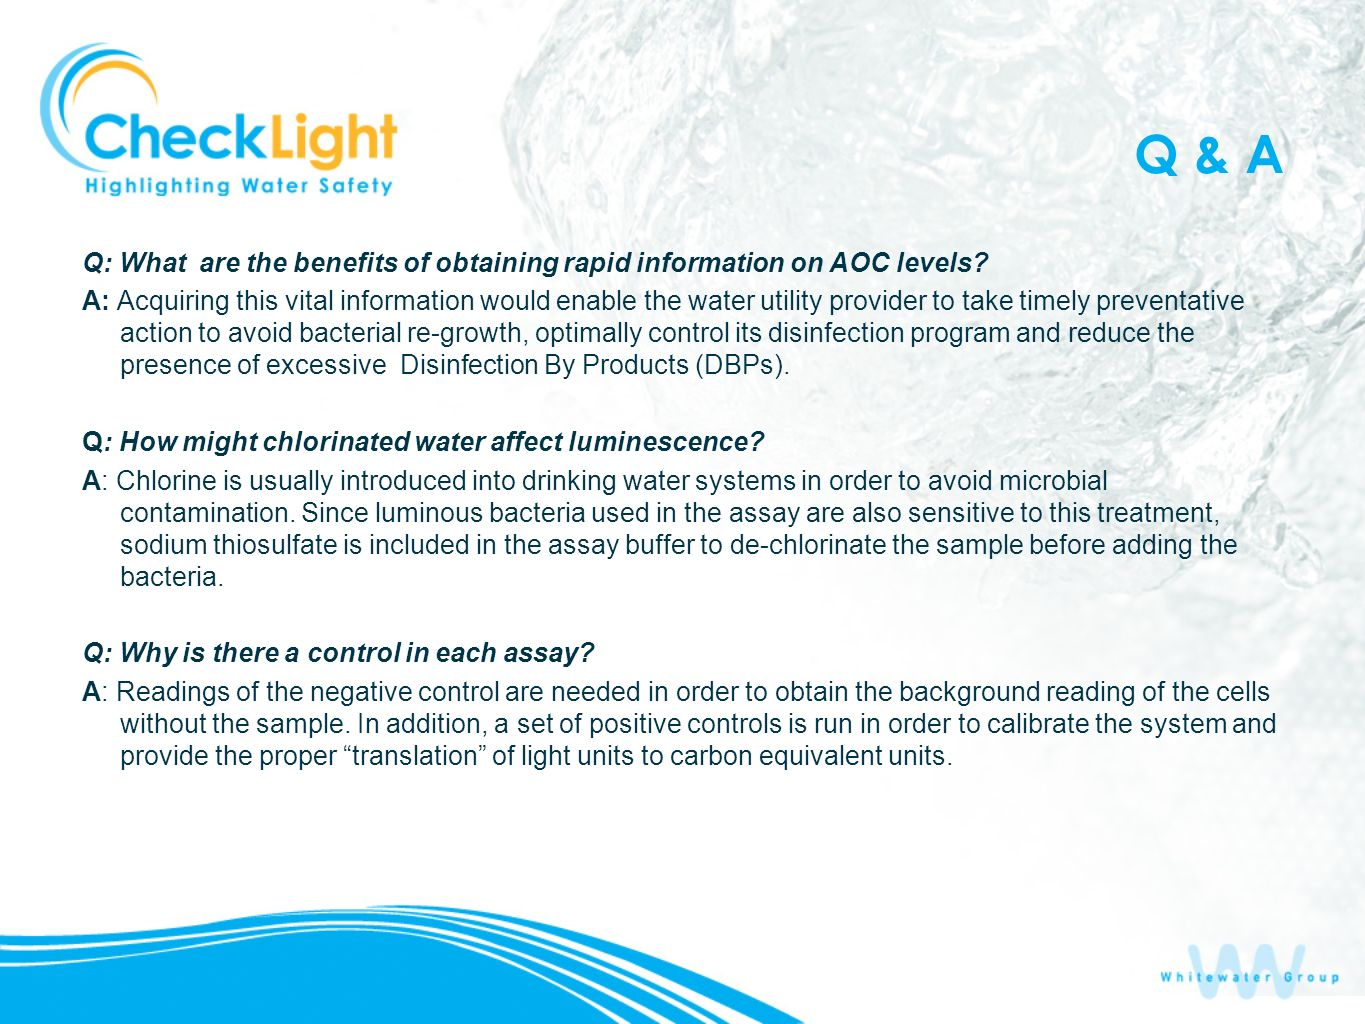 Q & A Q: What are the benefits of obtaining rapid information on AOC levels